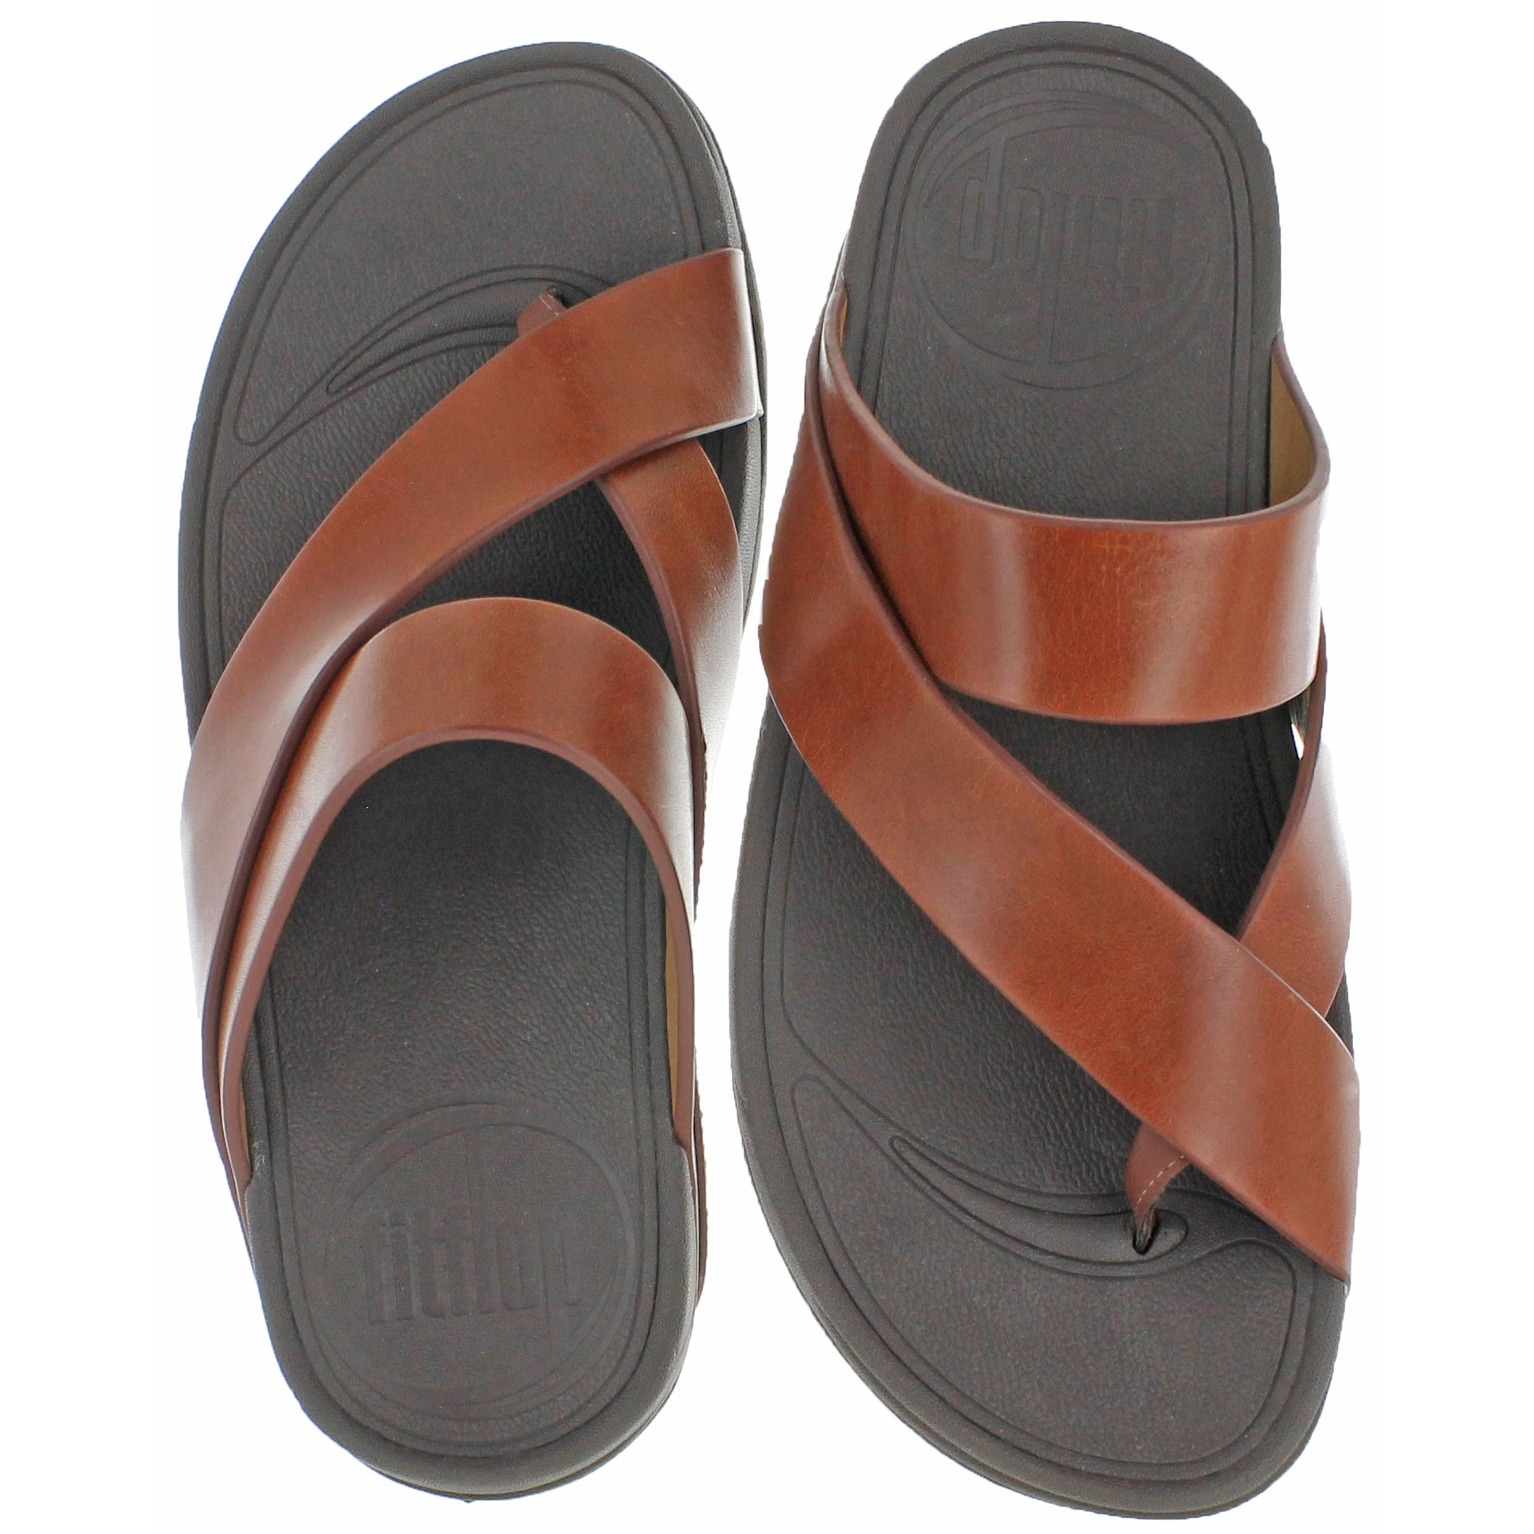 227eef8c518938 Shop FitFlop Sling Men s Criss Cross Strap Slide Sandals - Free Shipping On  Orders Over  45 - Overstock - 20636407